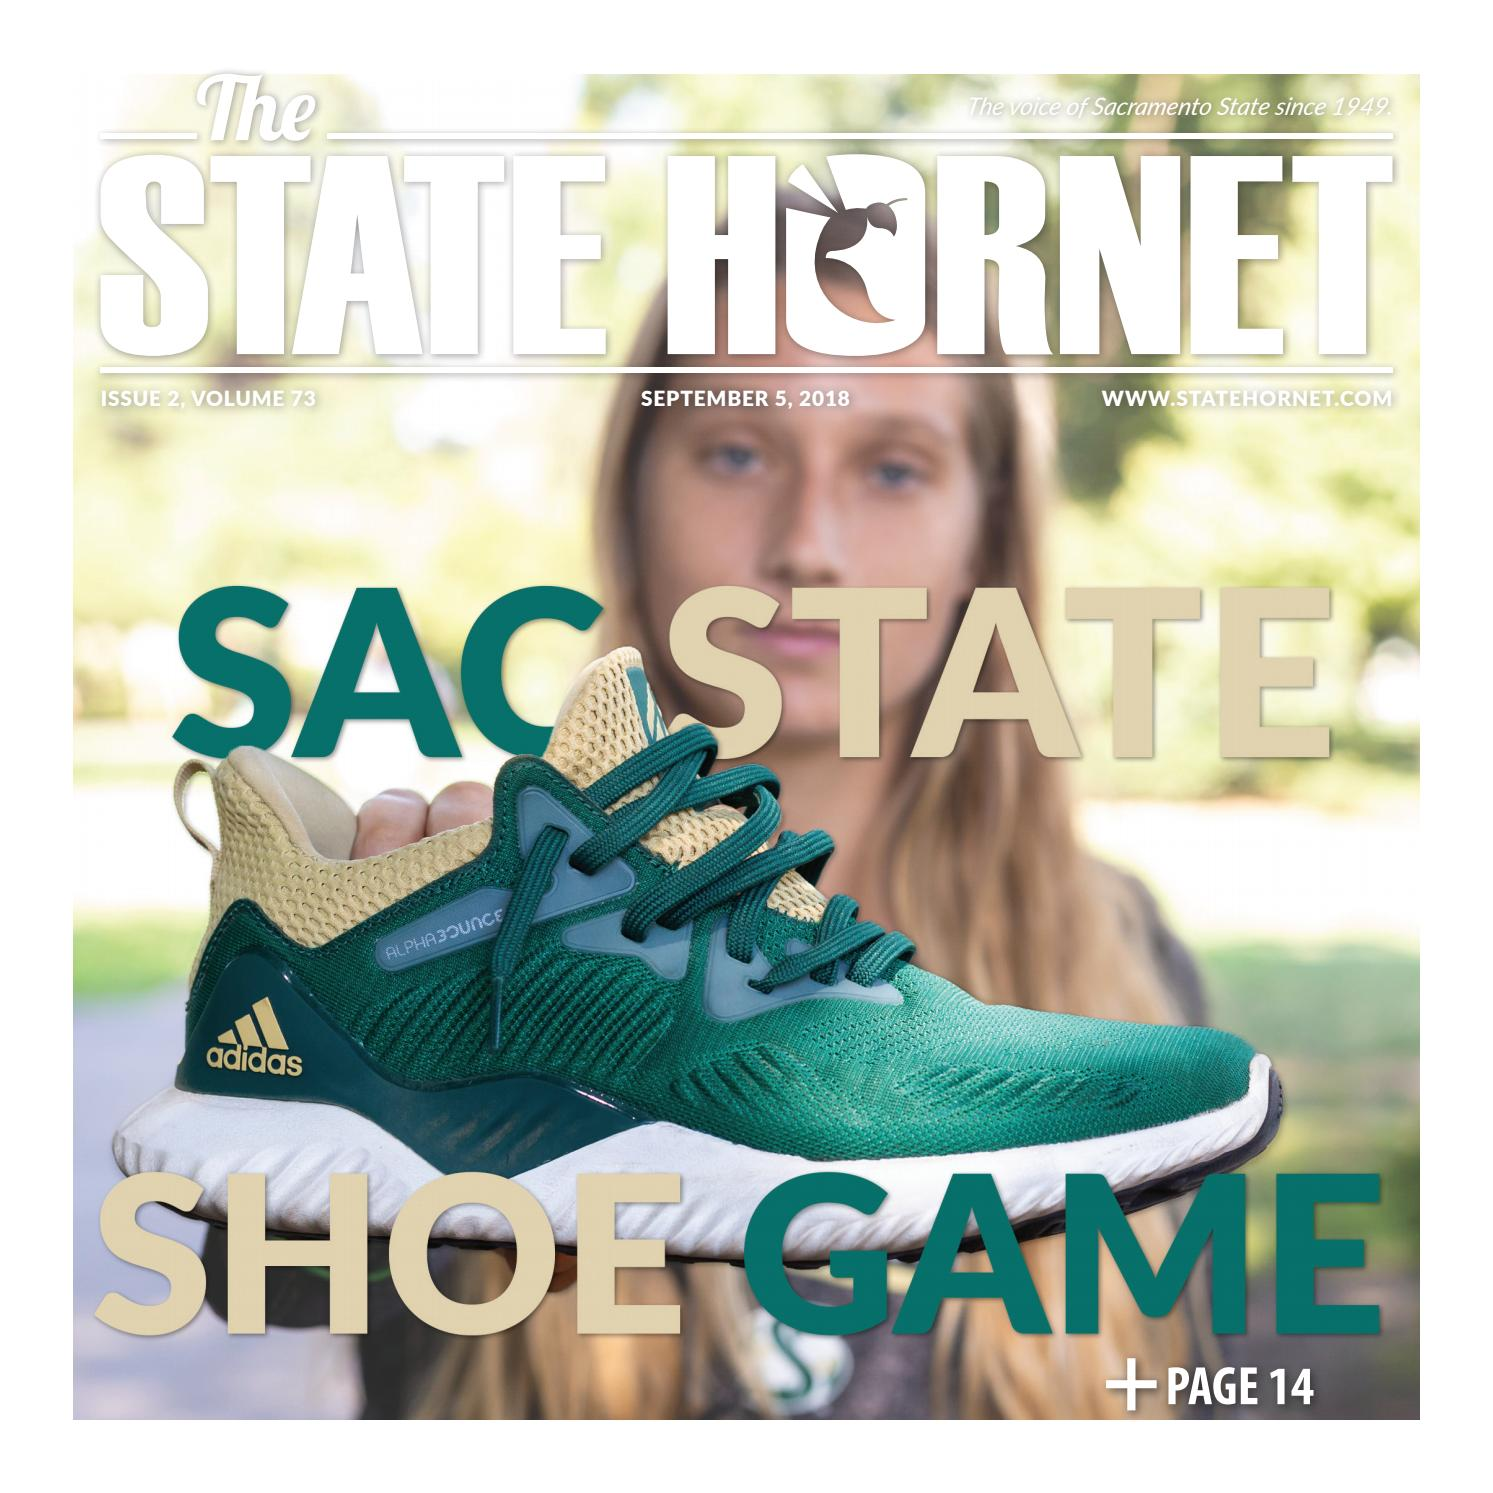 0f8416b4f5a859 The State Hornet — Issue 2 — Sept. 5